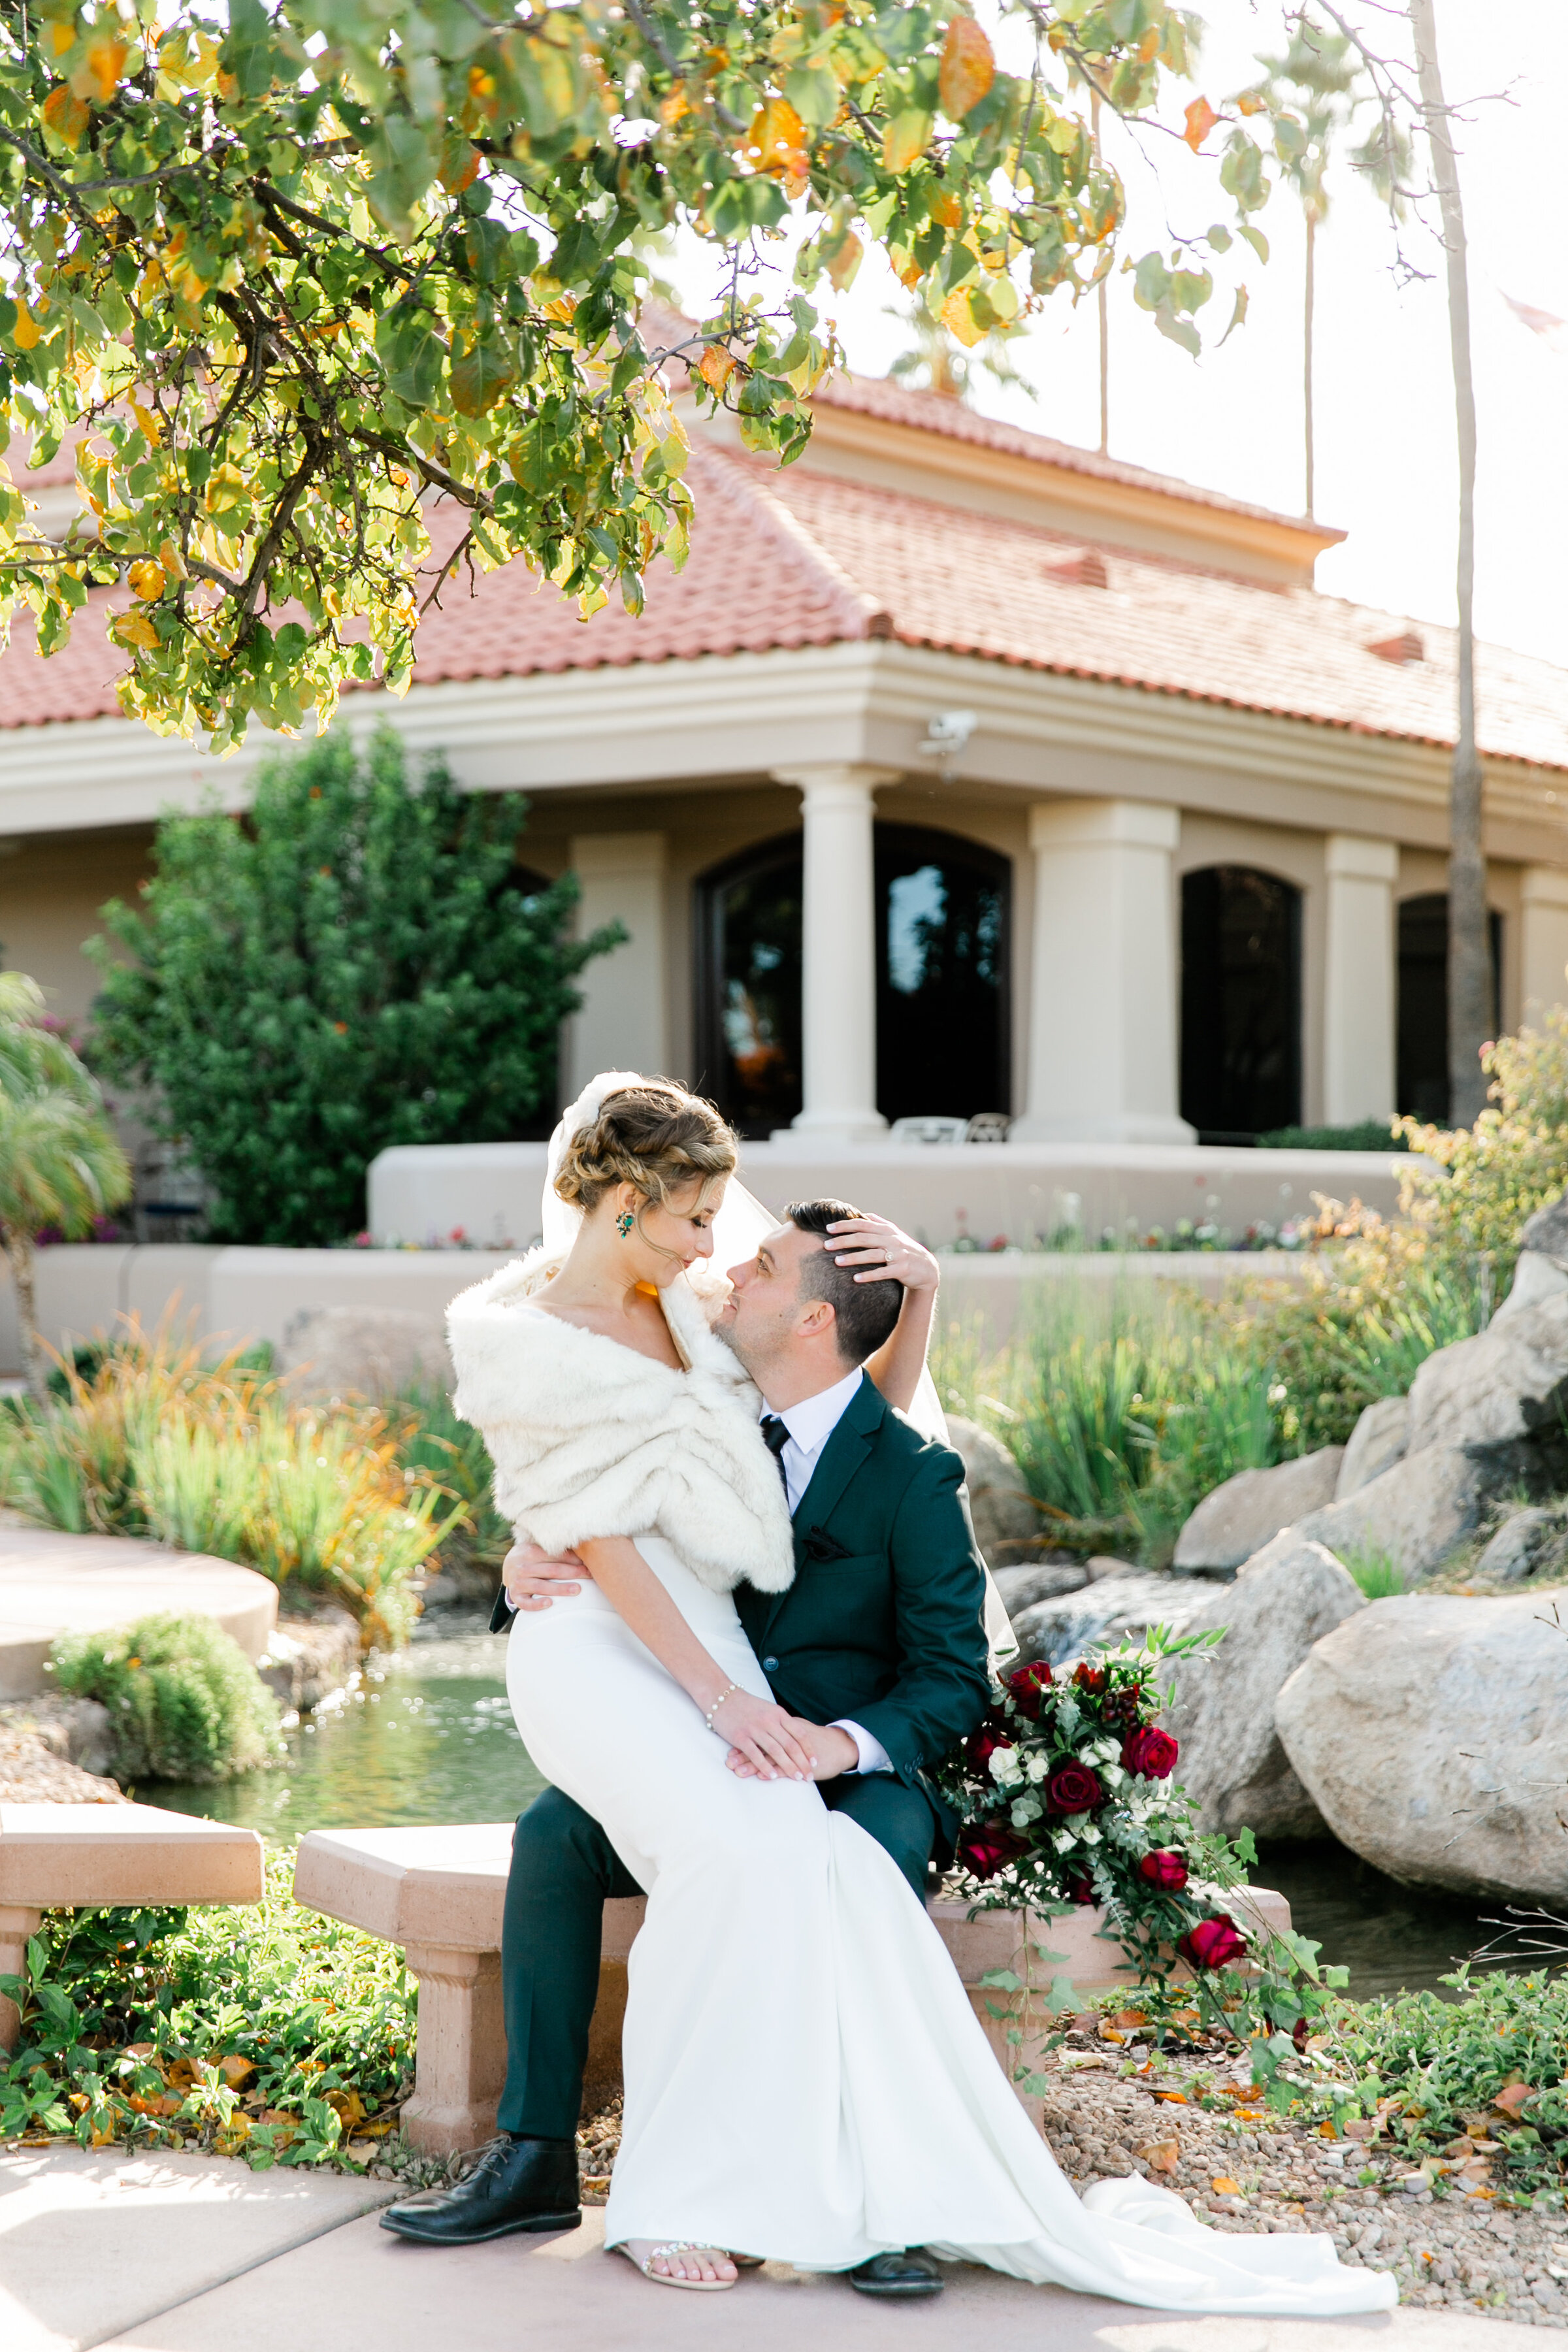 Karlie Colleen Photography - Gilbert Arizona Wedding - Val Vista Lakes - Brynne & Josh-447